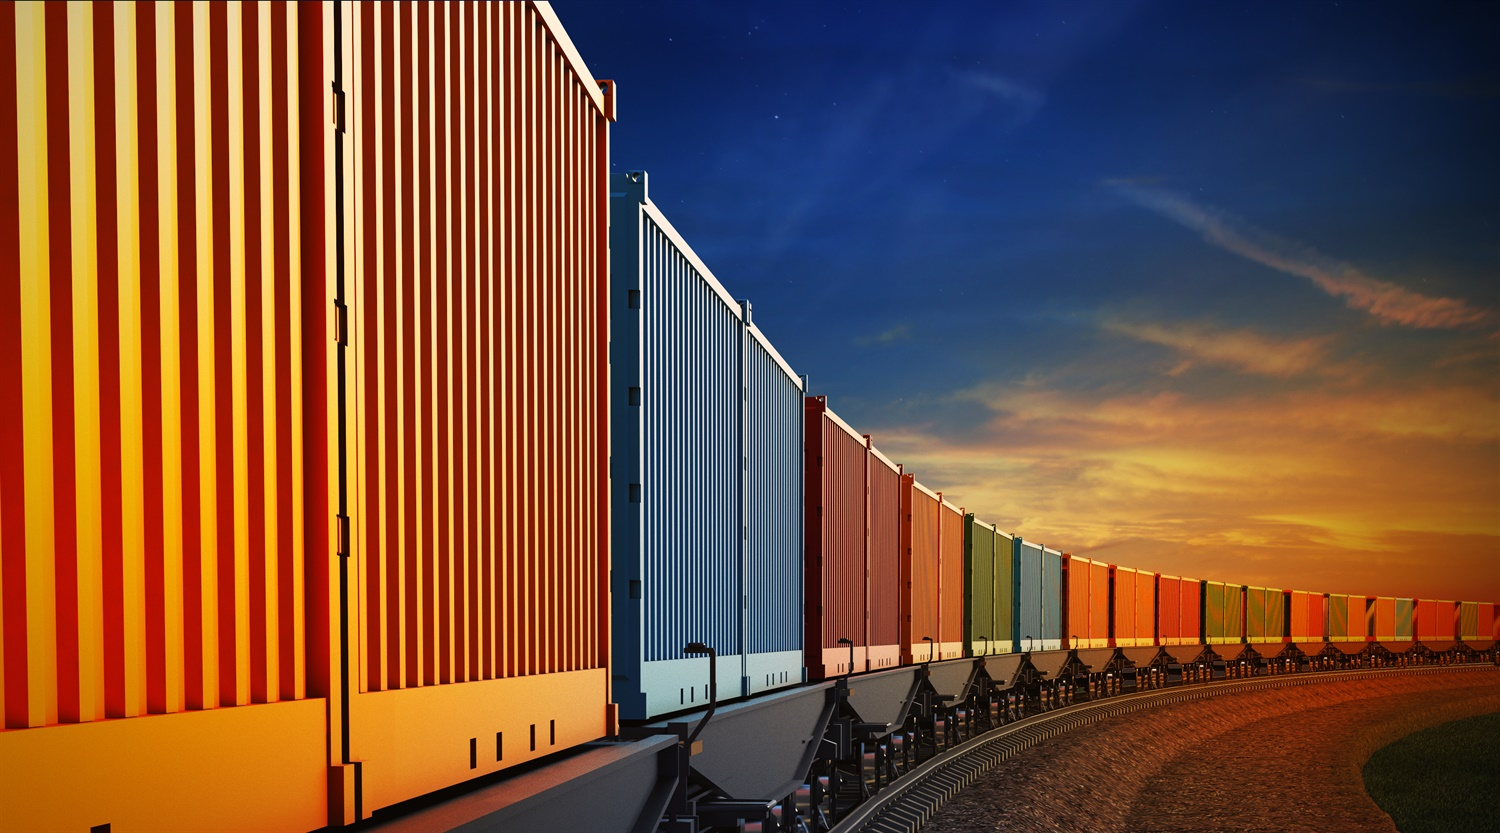 Lord Berkeley: The time for freight is now